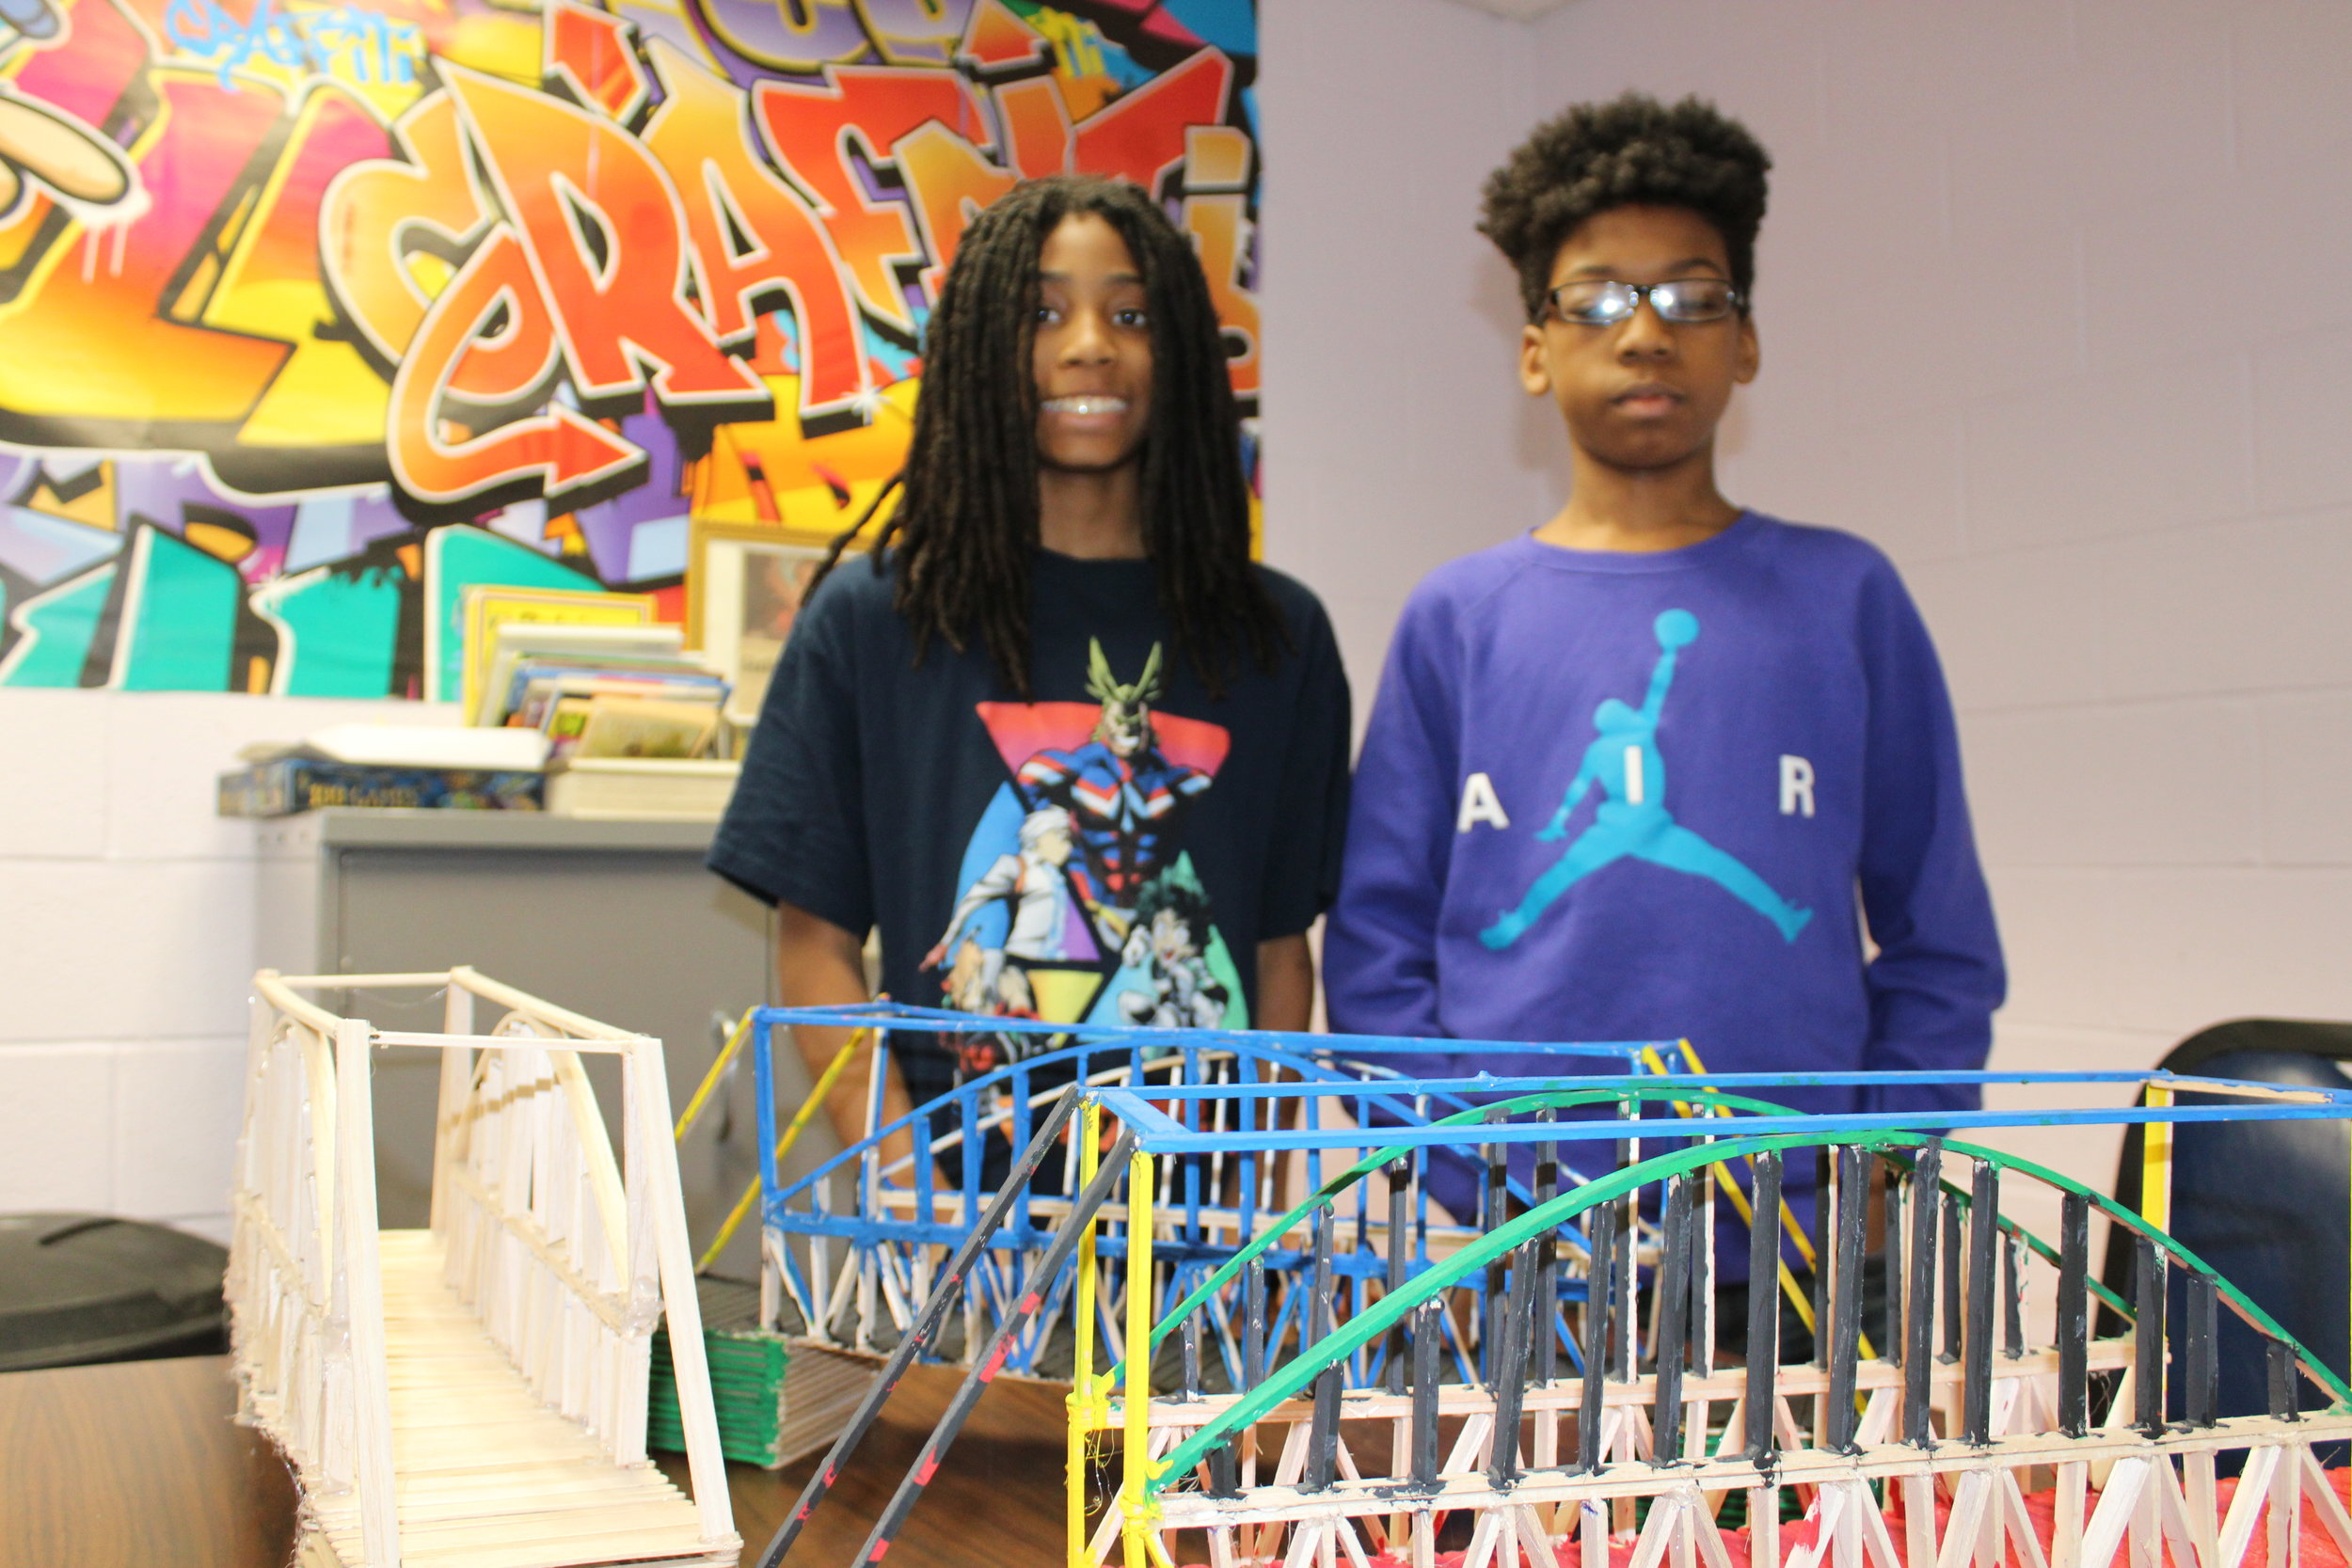 Anthony and Deshaun standing next to their creations at the Carver Community Center